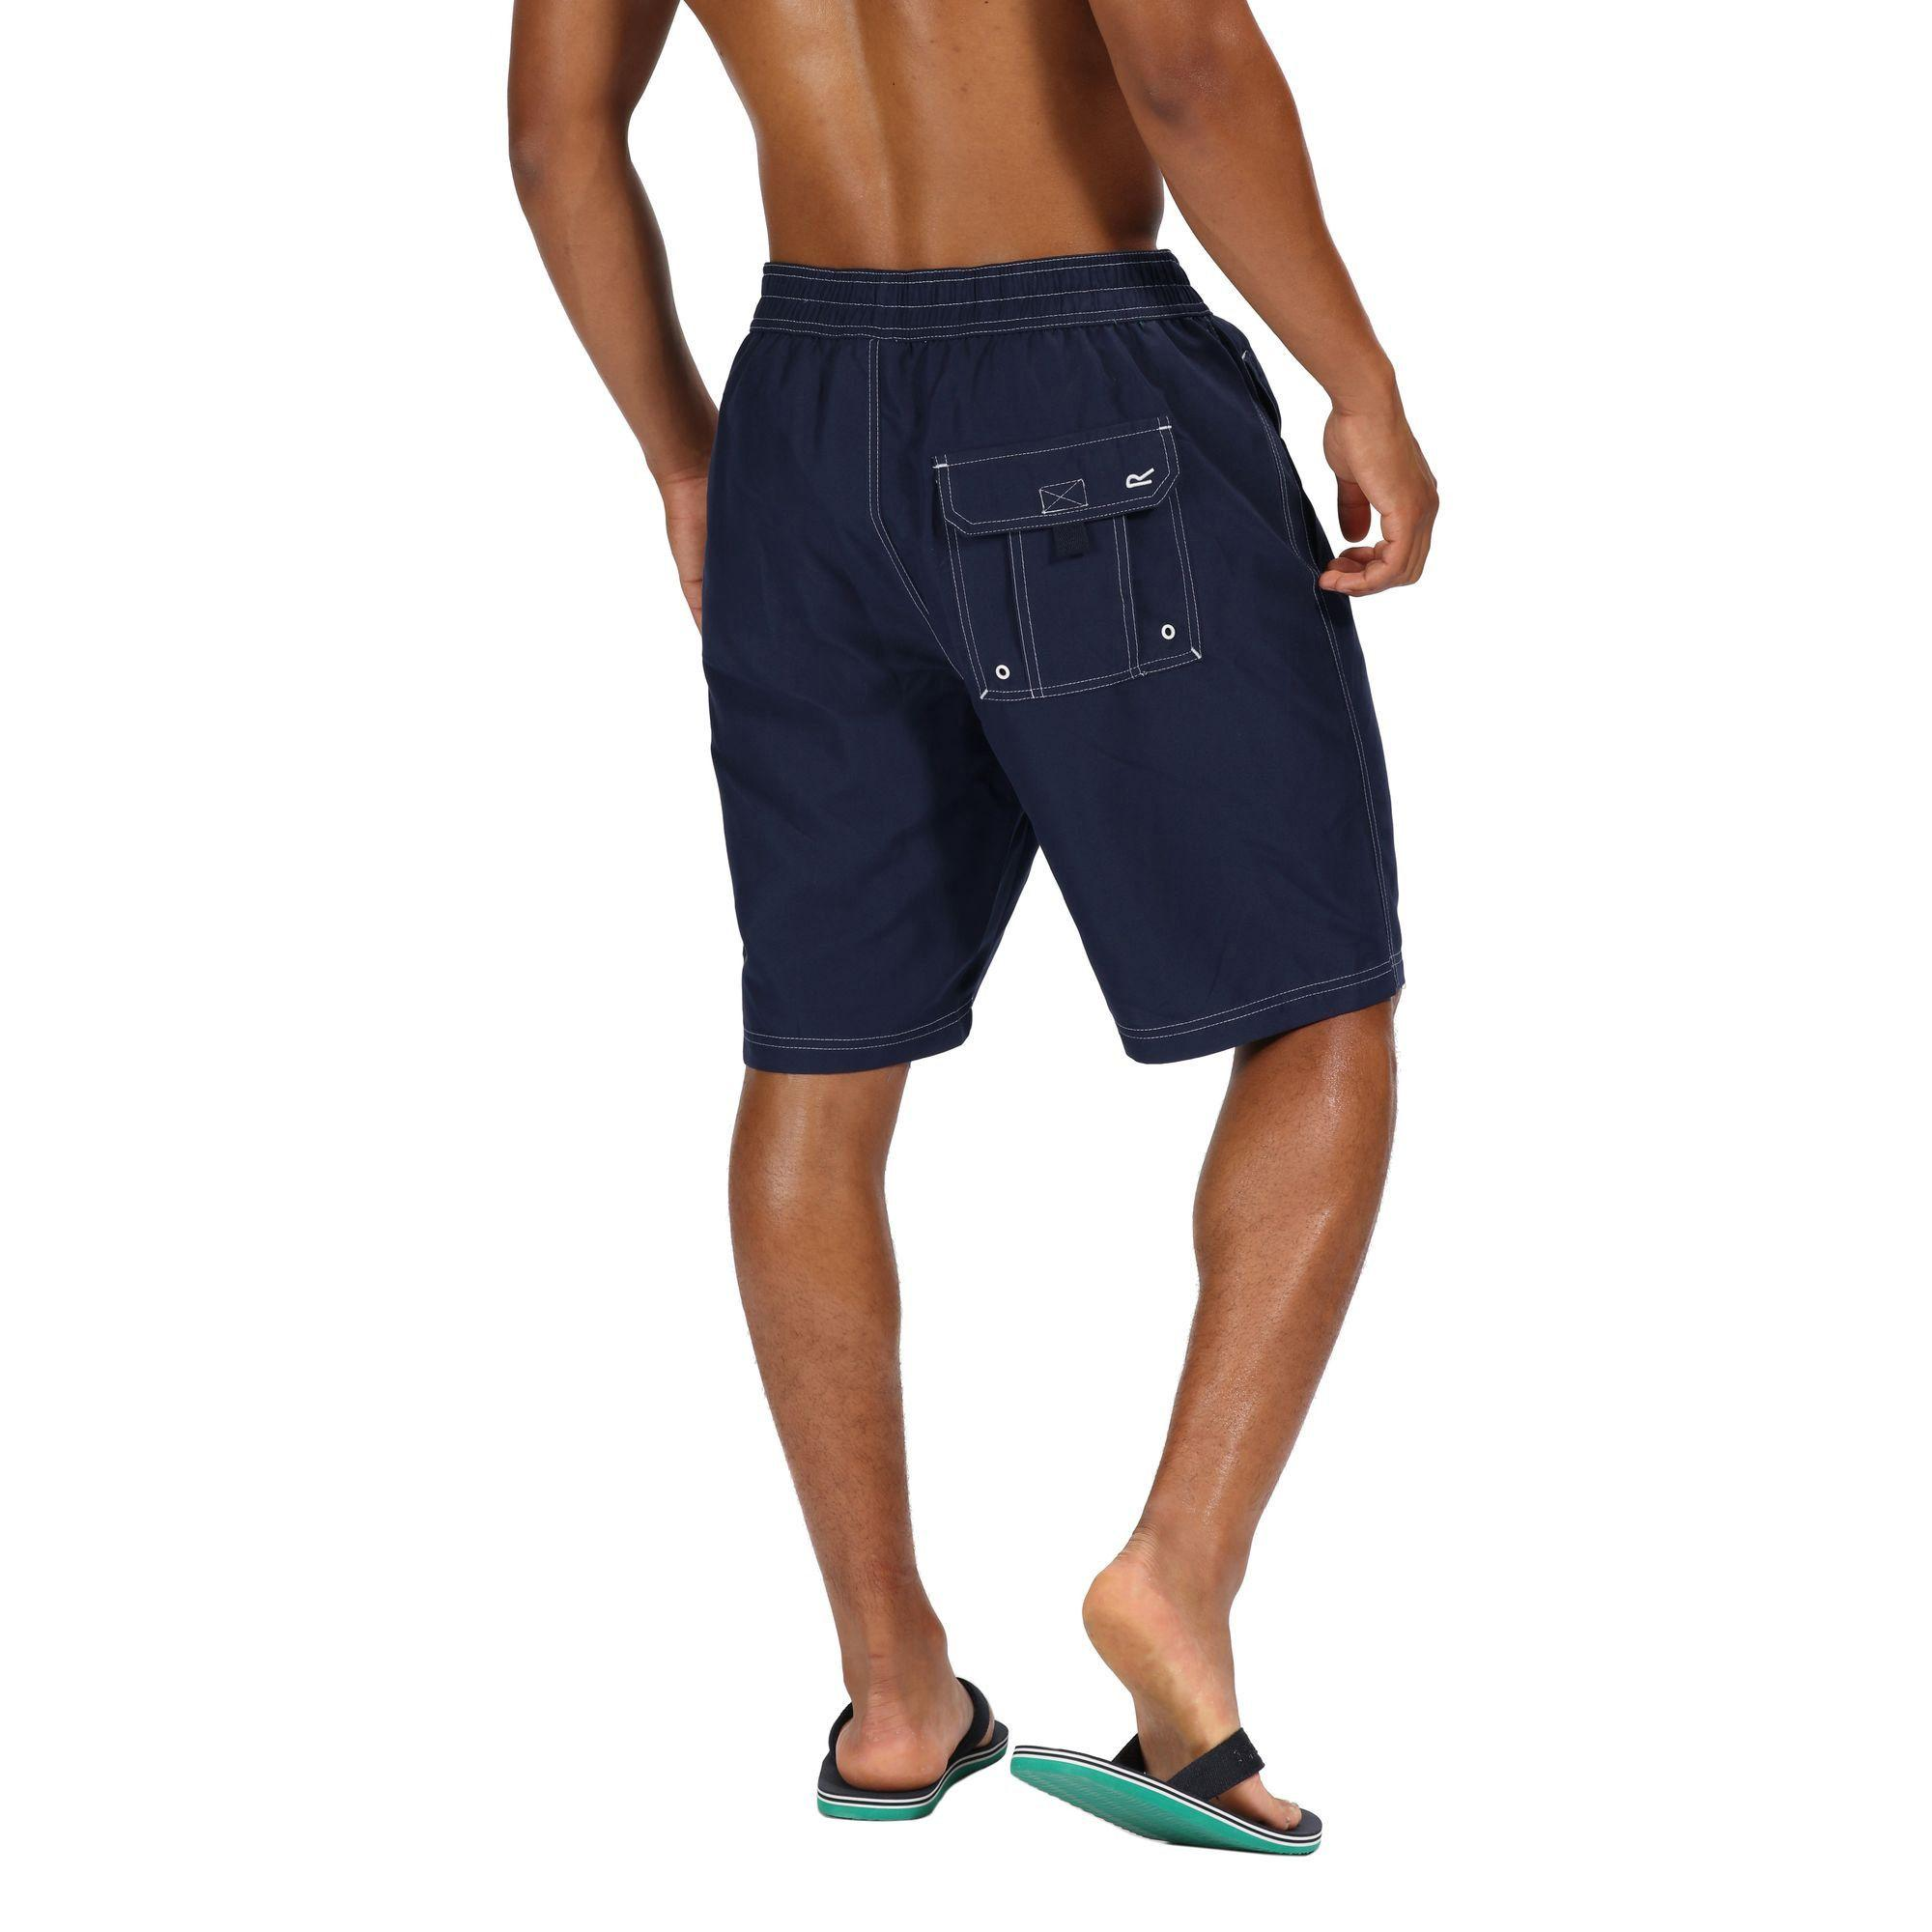 537733448c Regatta - Blue Hotham Iii Swim Shorts for Men - Lyst. View fullscreen